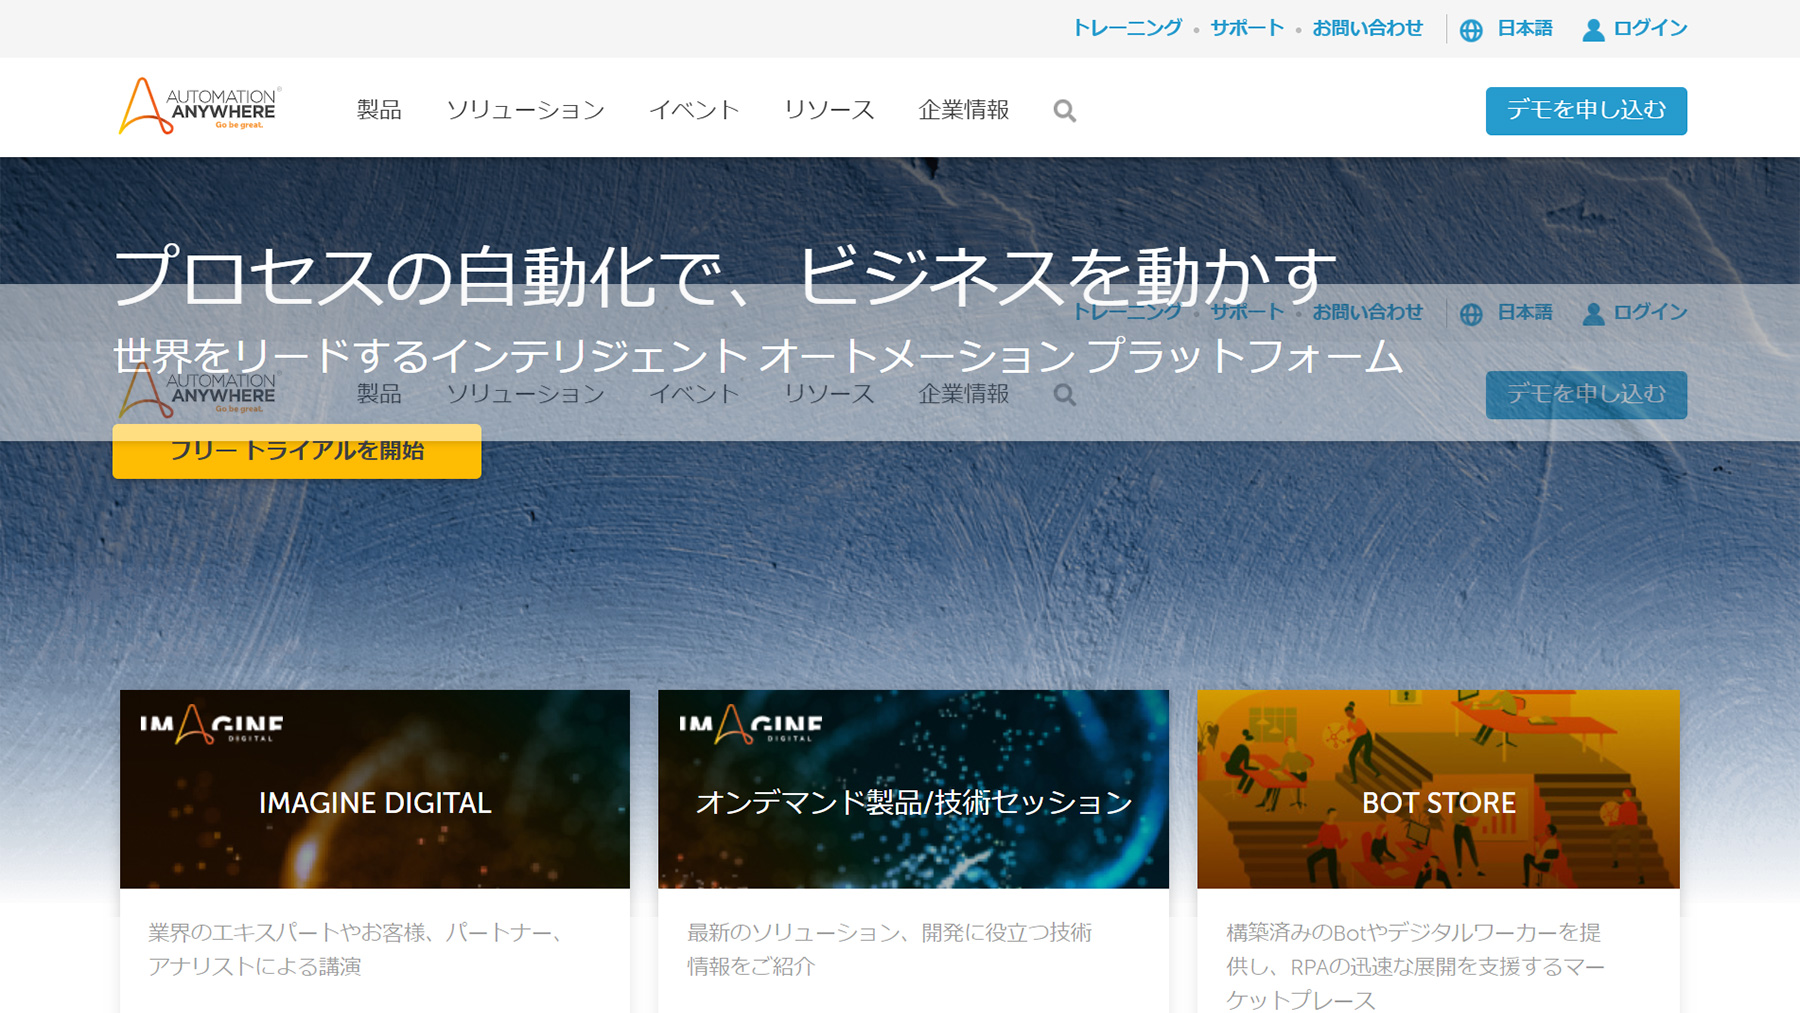 Automation Anywhere公式Webサイト